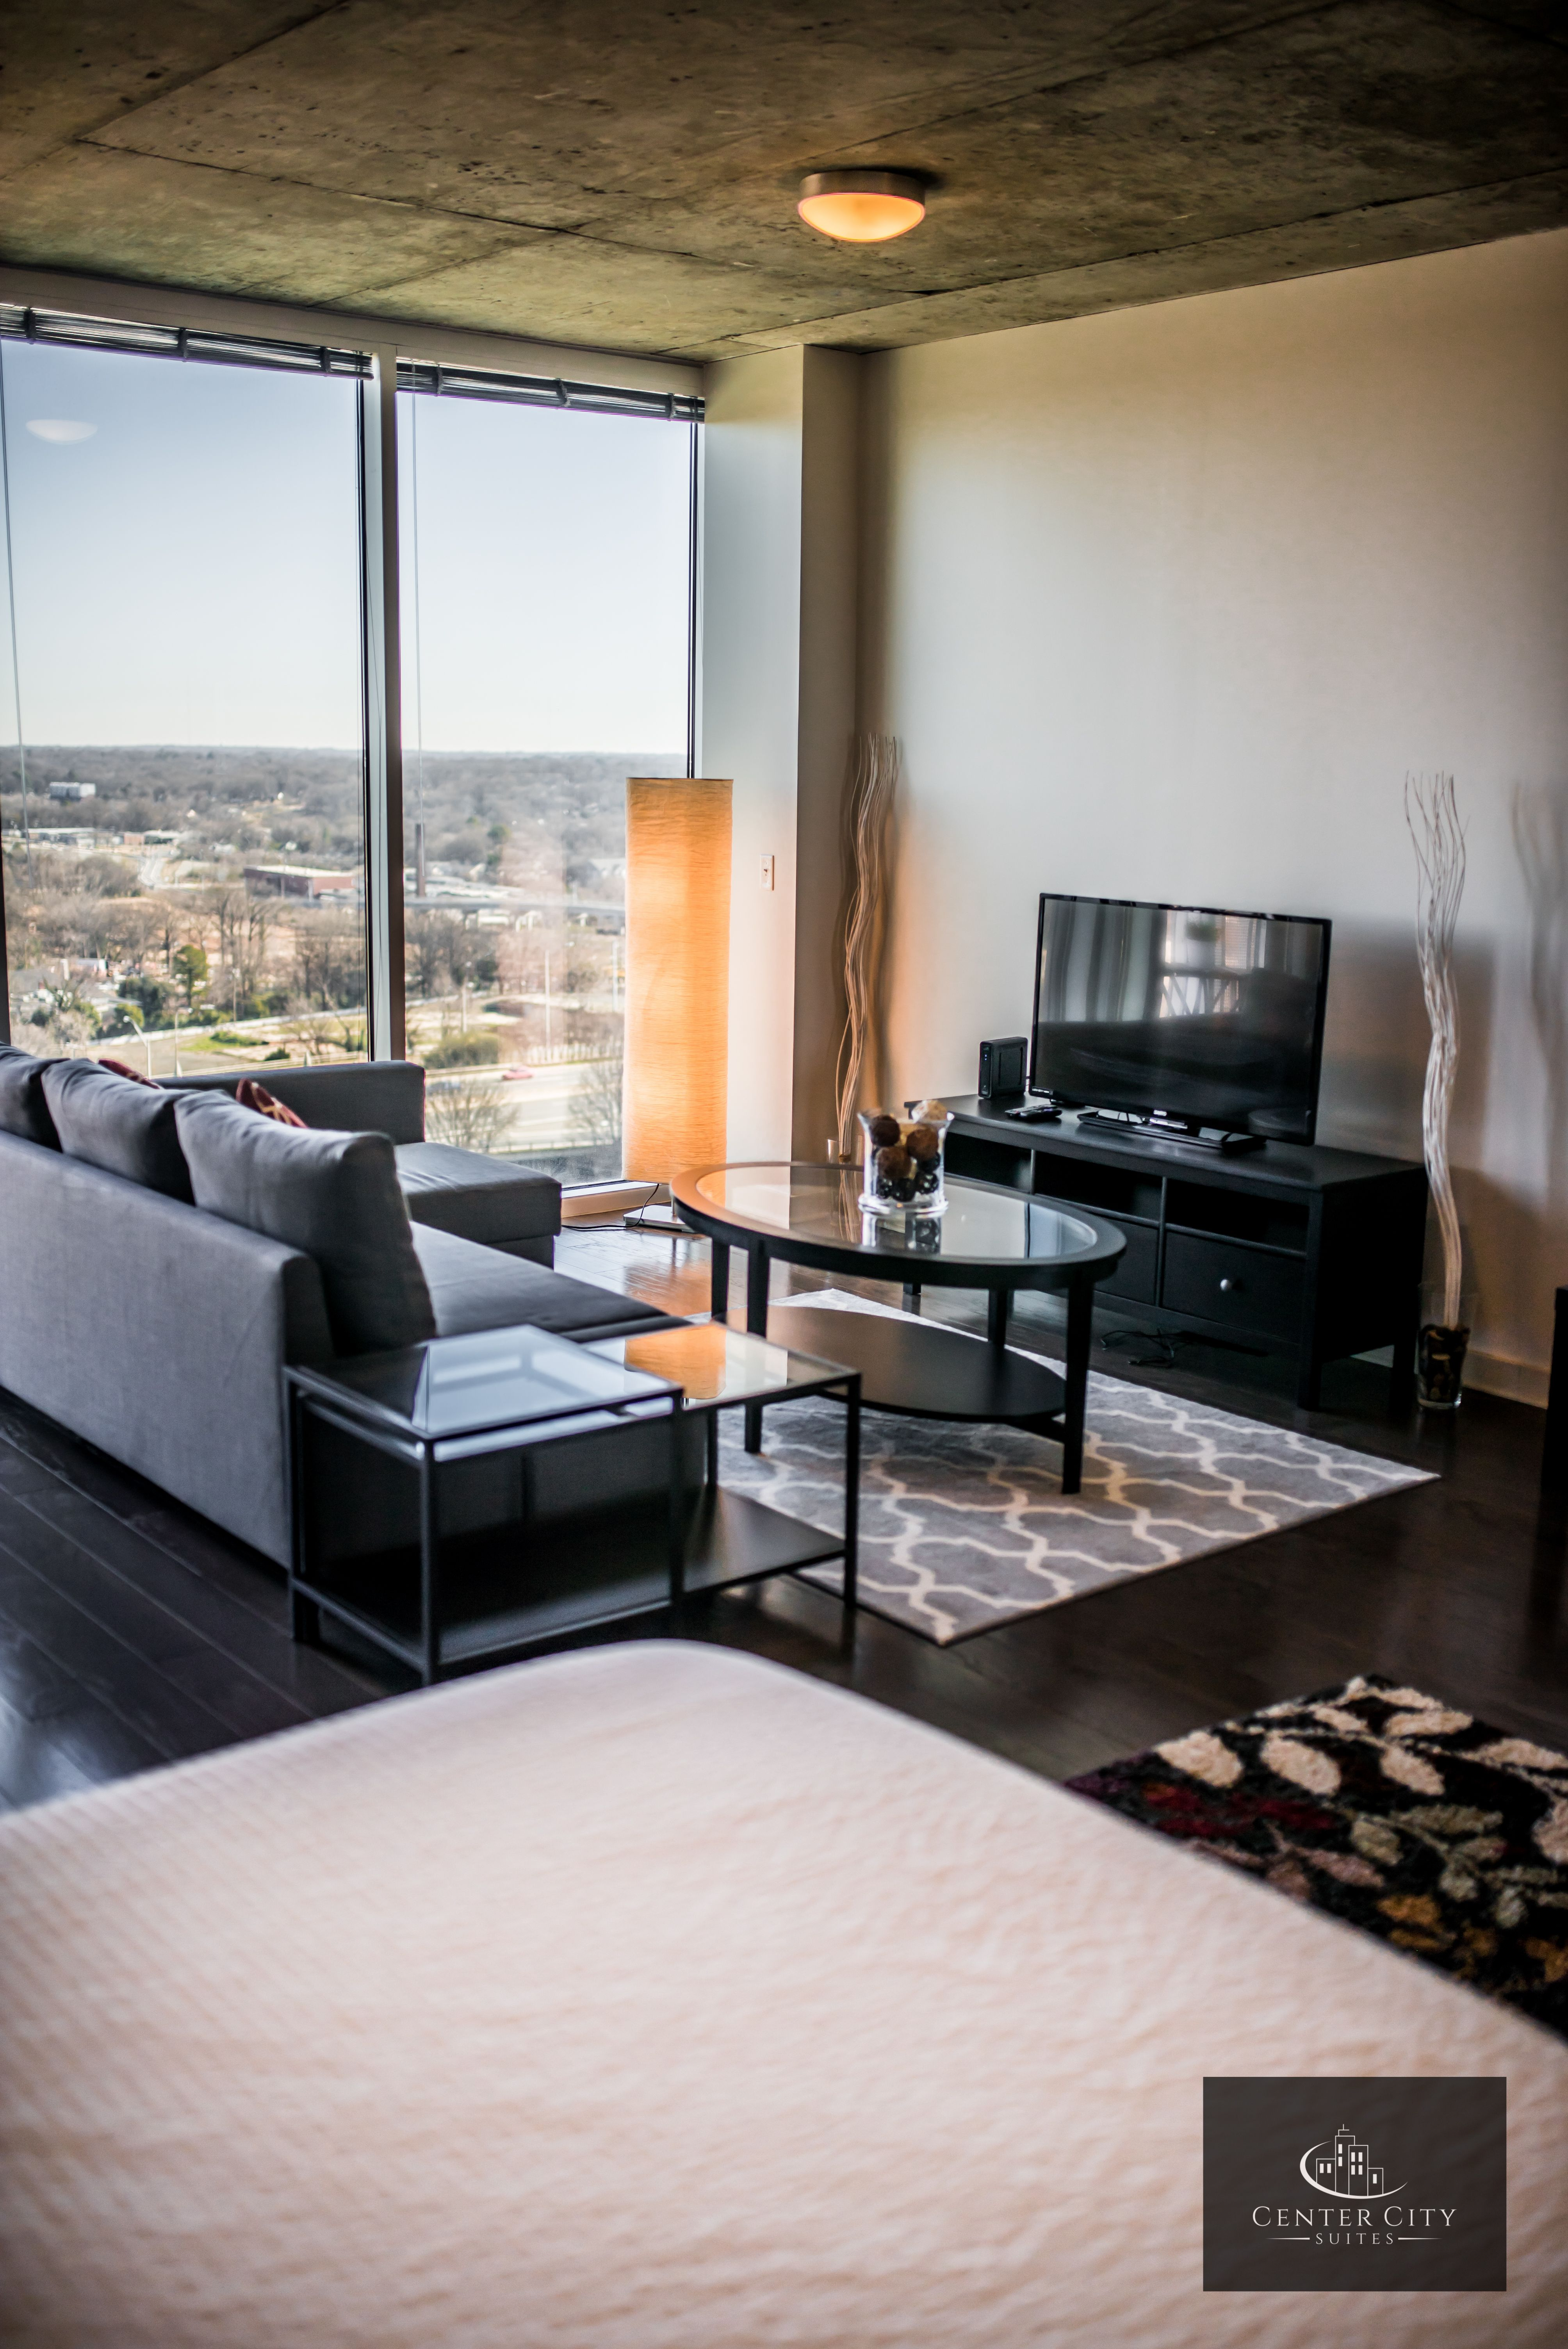 Center City Suites Furnished Apartments Charlotte Nc